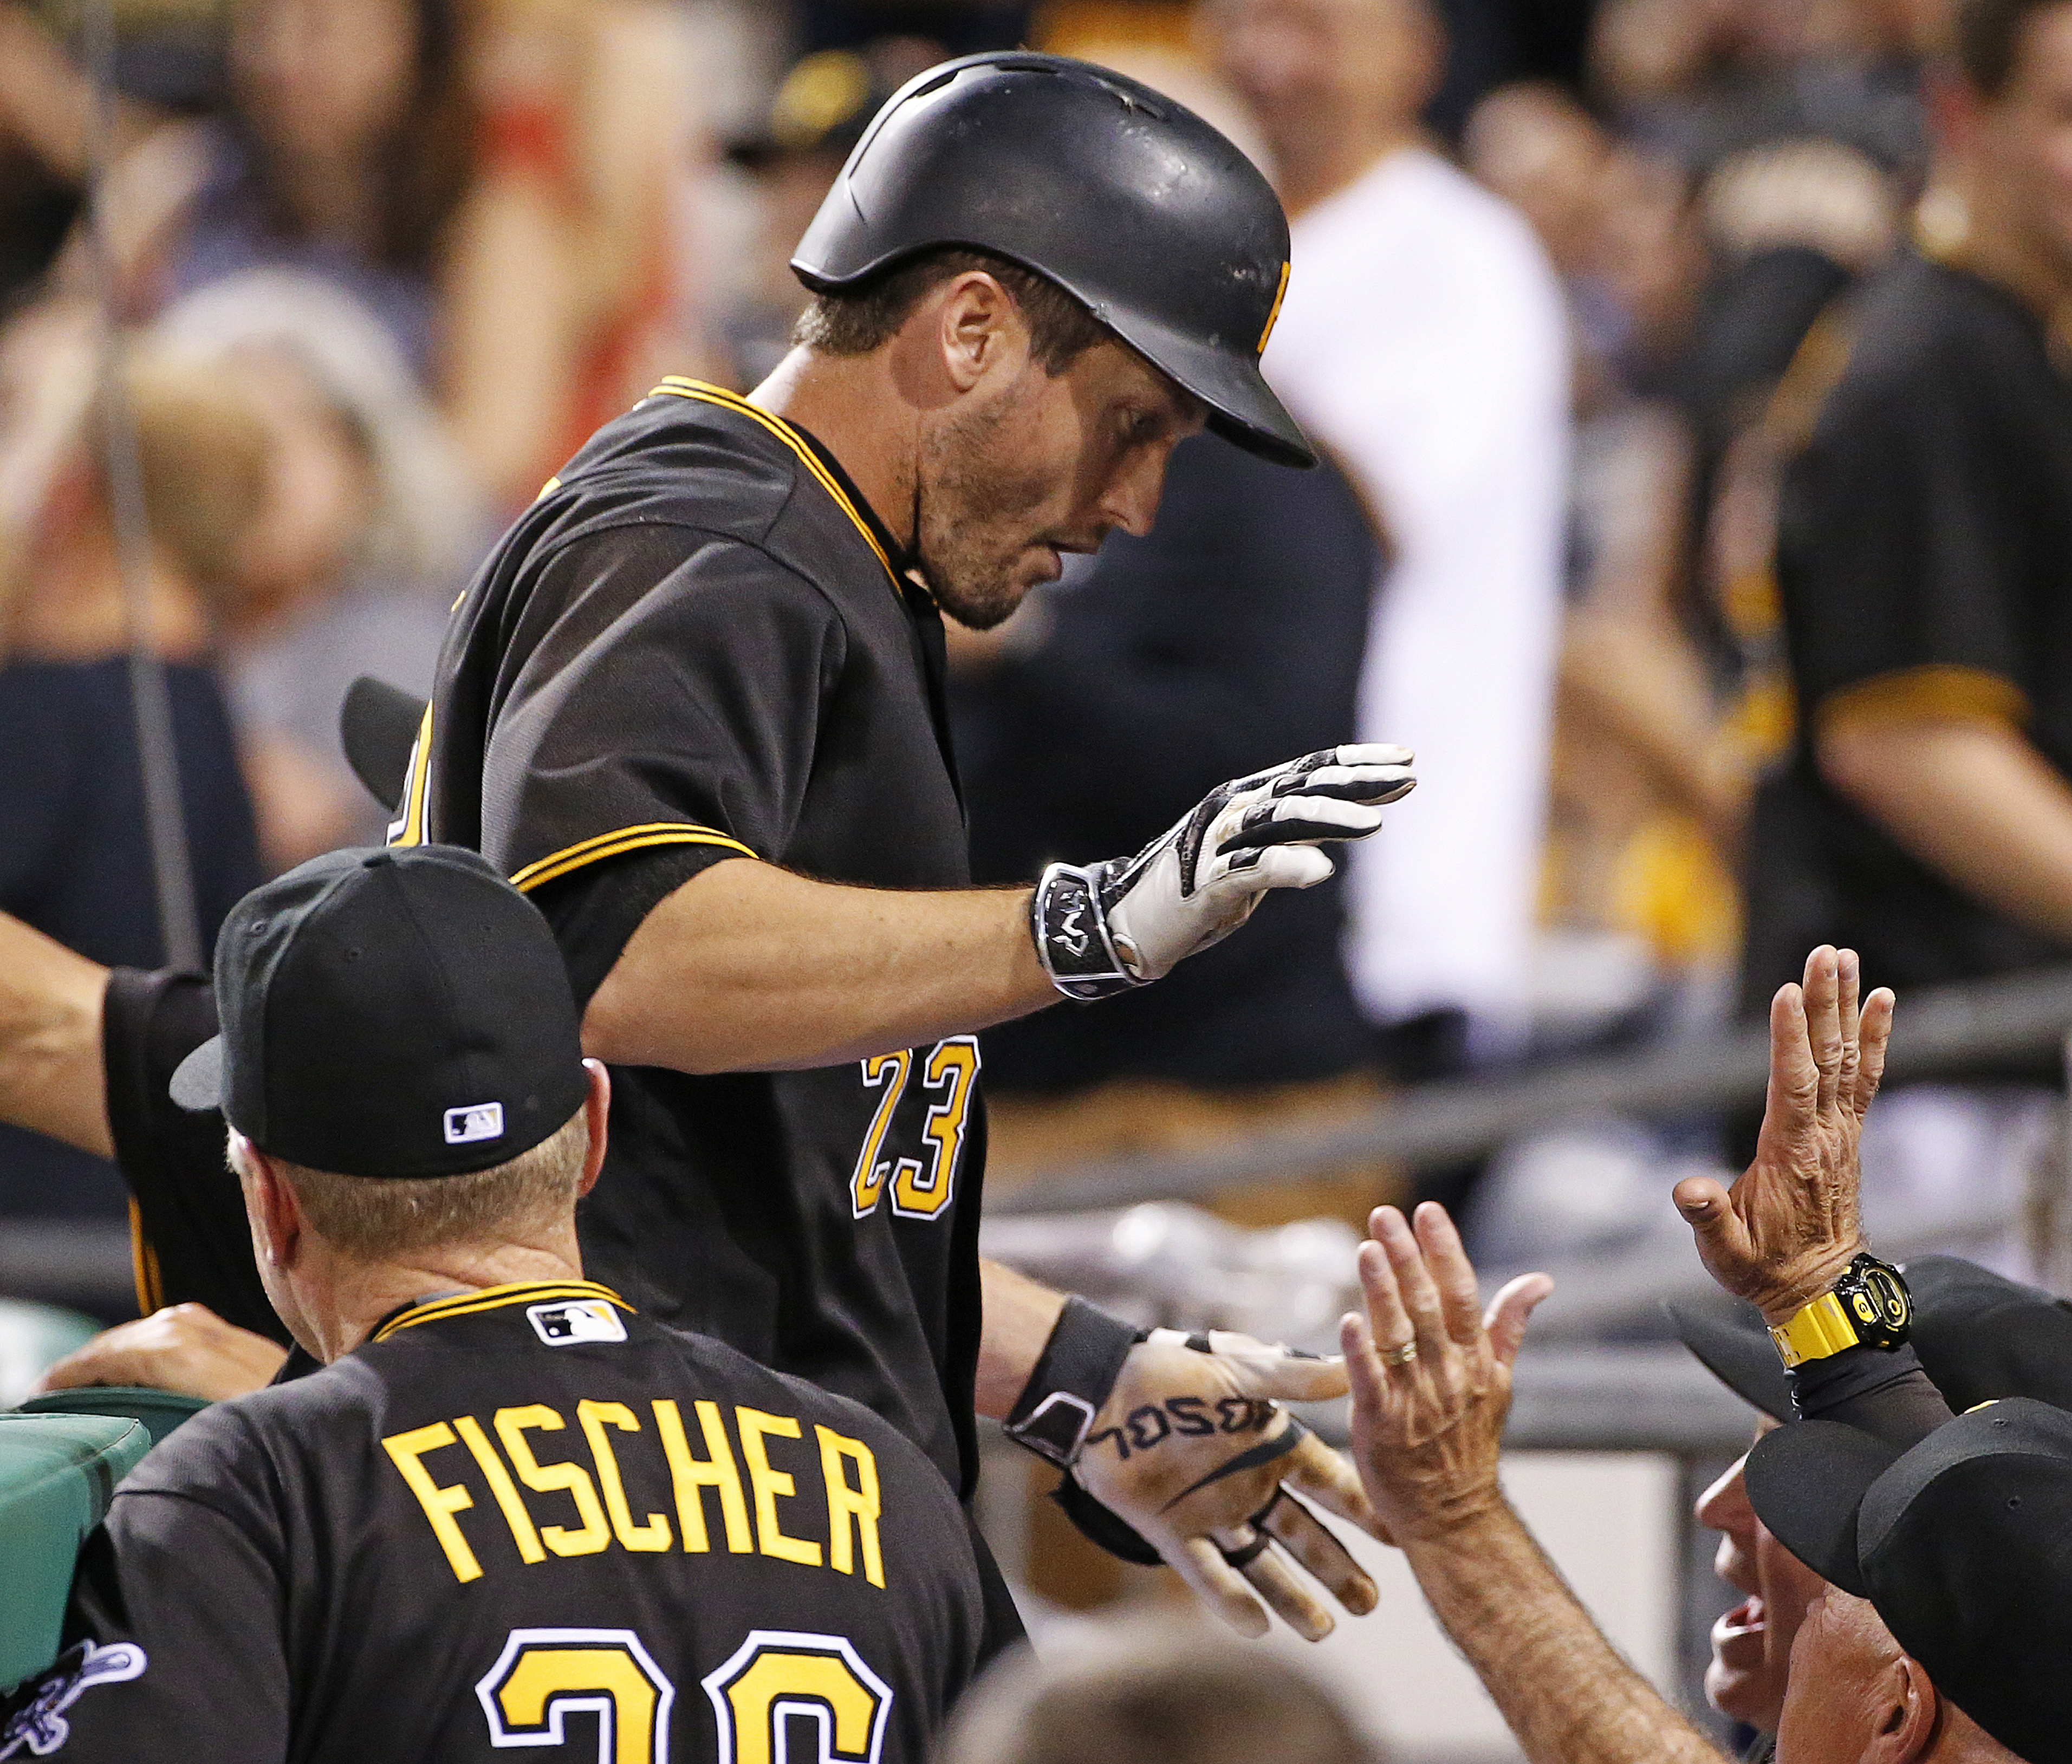 Pittsburgh Pirates' David Freese (23) returns to the dugout after hitting a two-run home run off Arizona Diamondbacks starting pitcher Rubby De La Rosa during the fifth inning of a baseball game in Pittsburgh, Wednesday, May 25, 2016. (AP Photo/Gene J. Pu